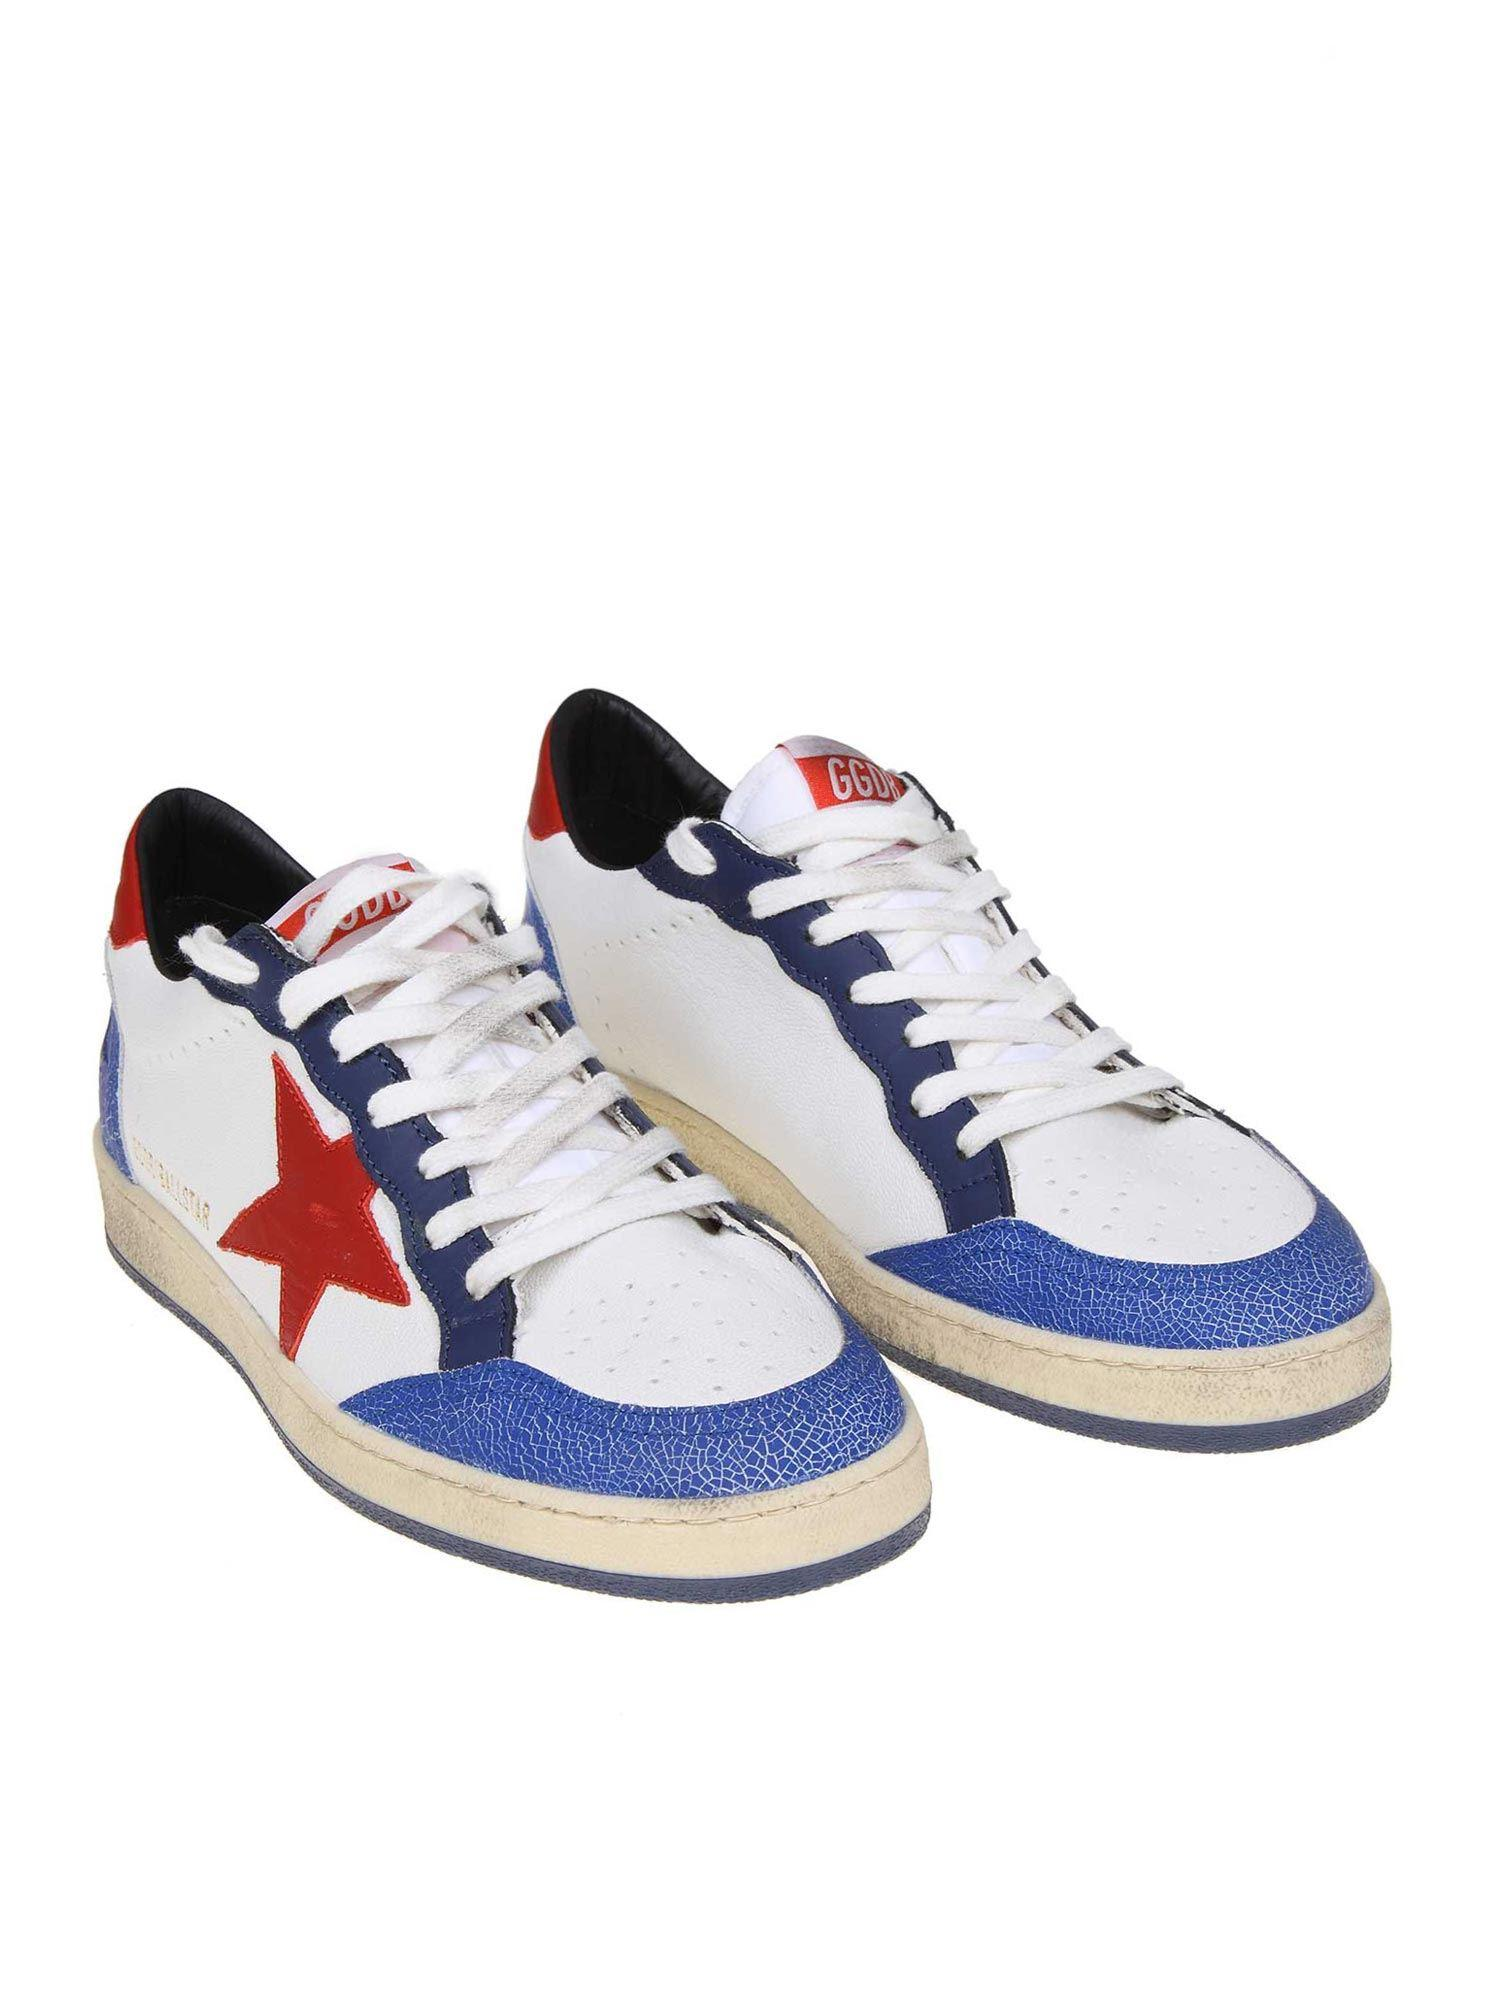 1ad957a8d6bfc Lyst - Golden Goose Deluxe Brand White And Blue Ball Star Sneakers in White  for Men